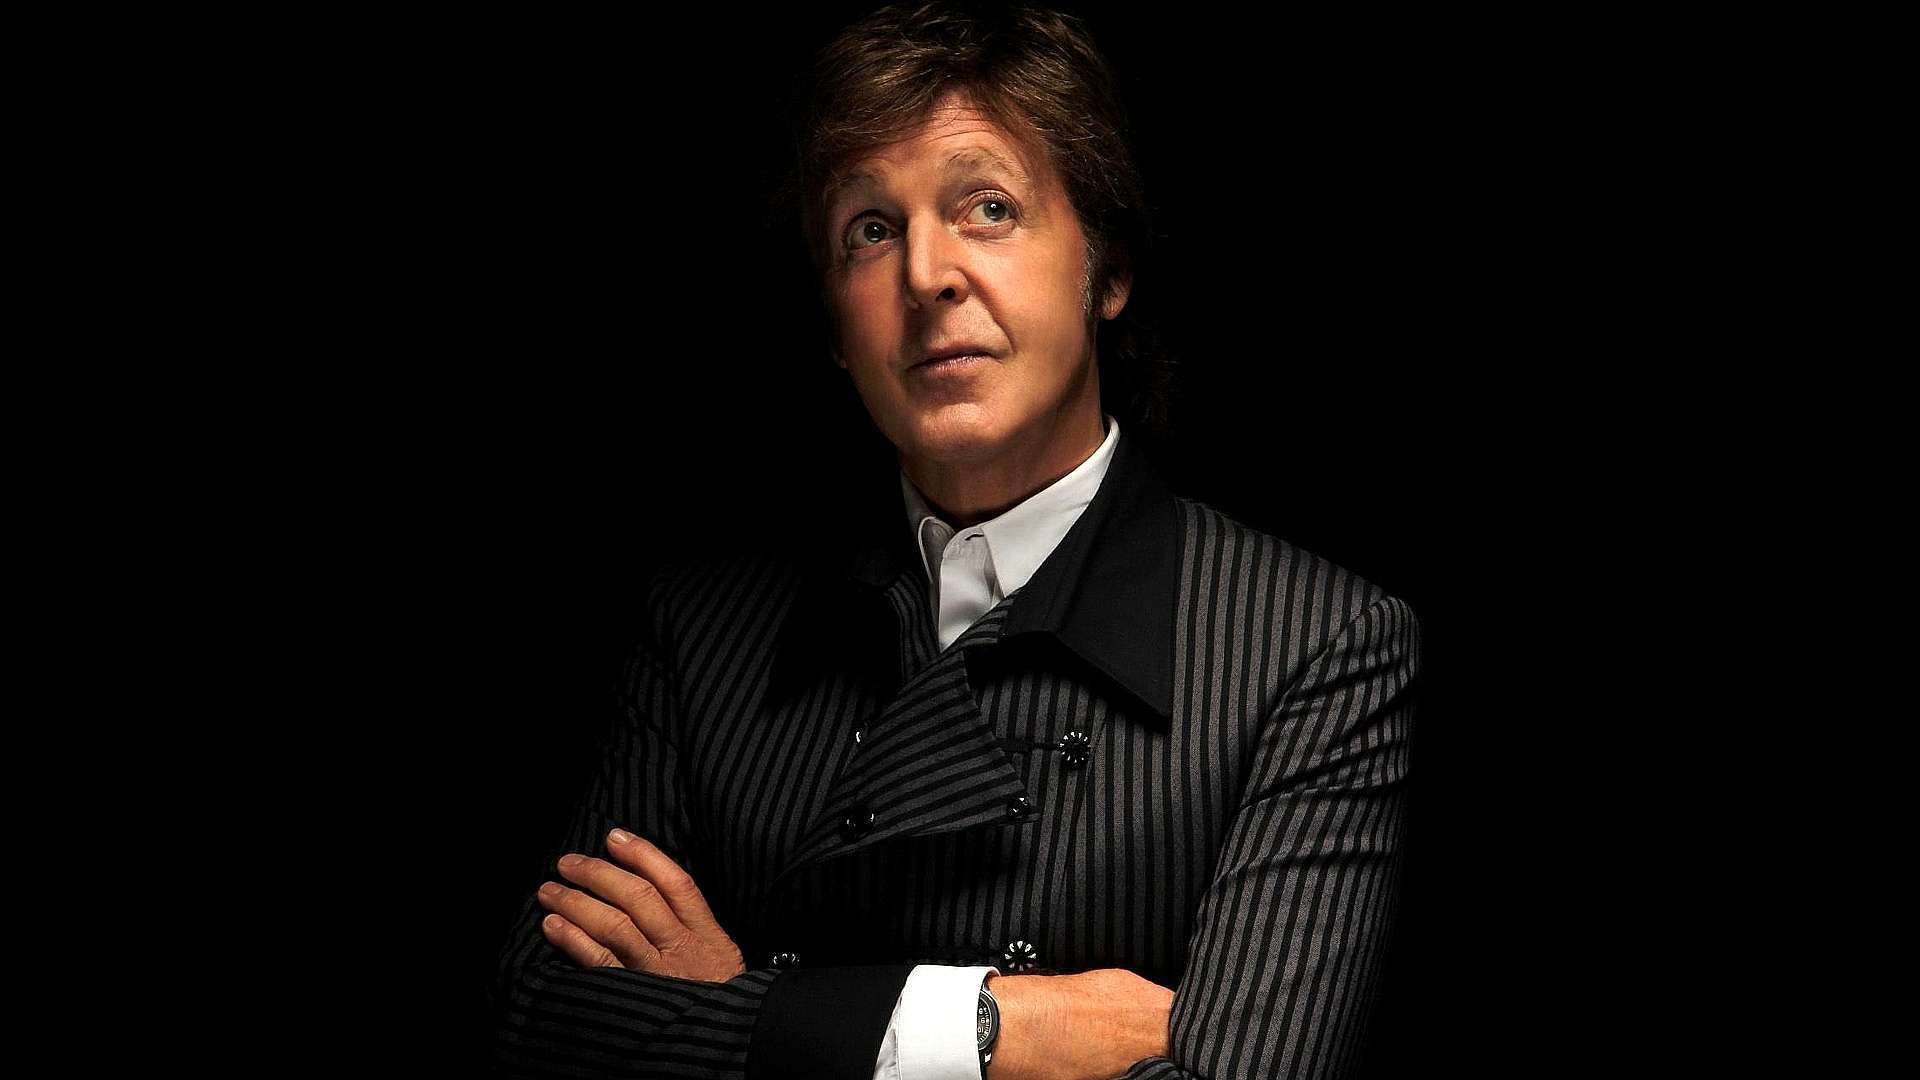 Paul McCartney Wallpapers